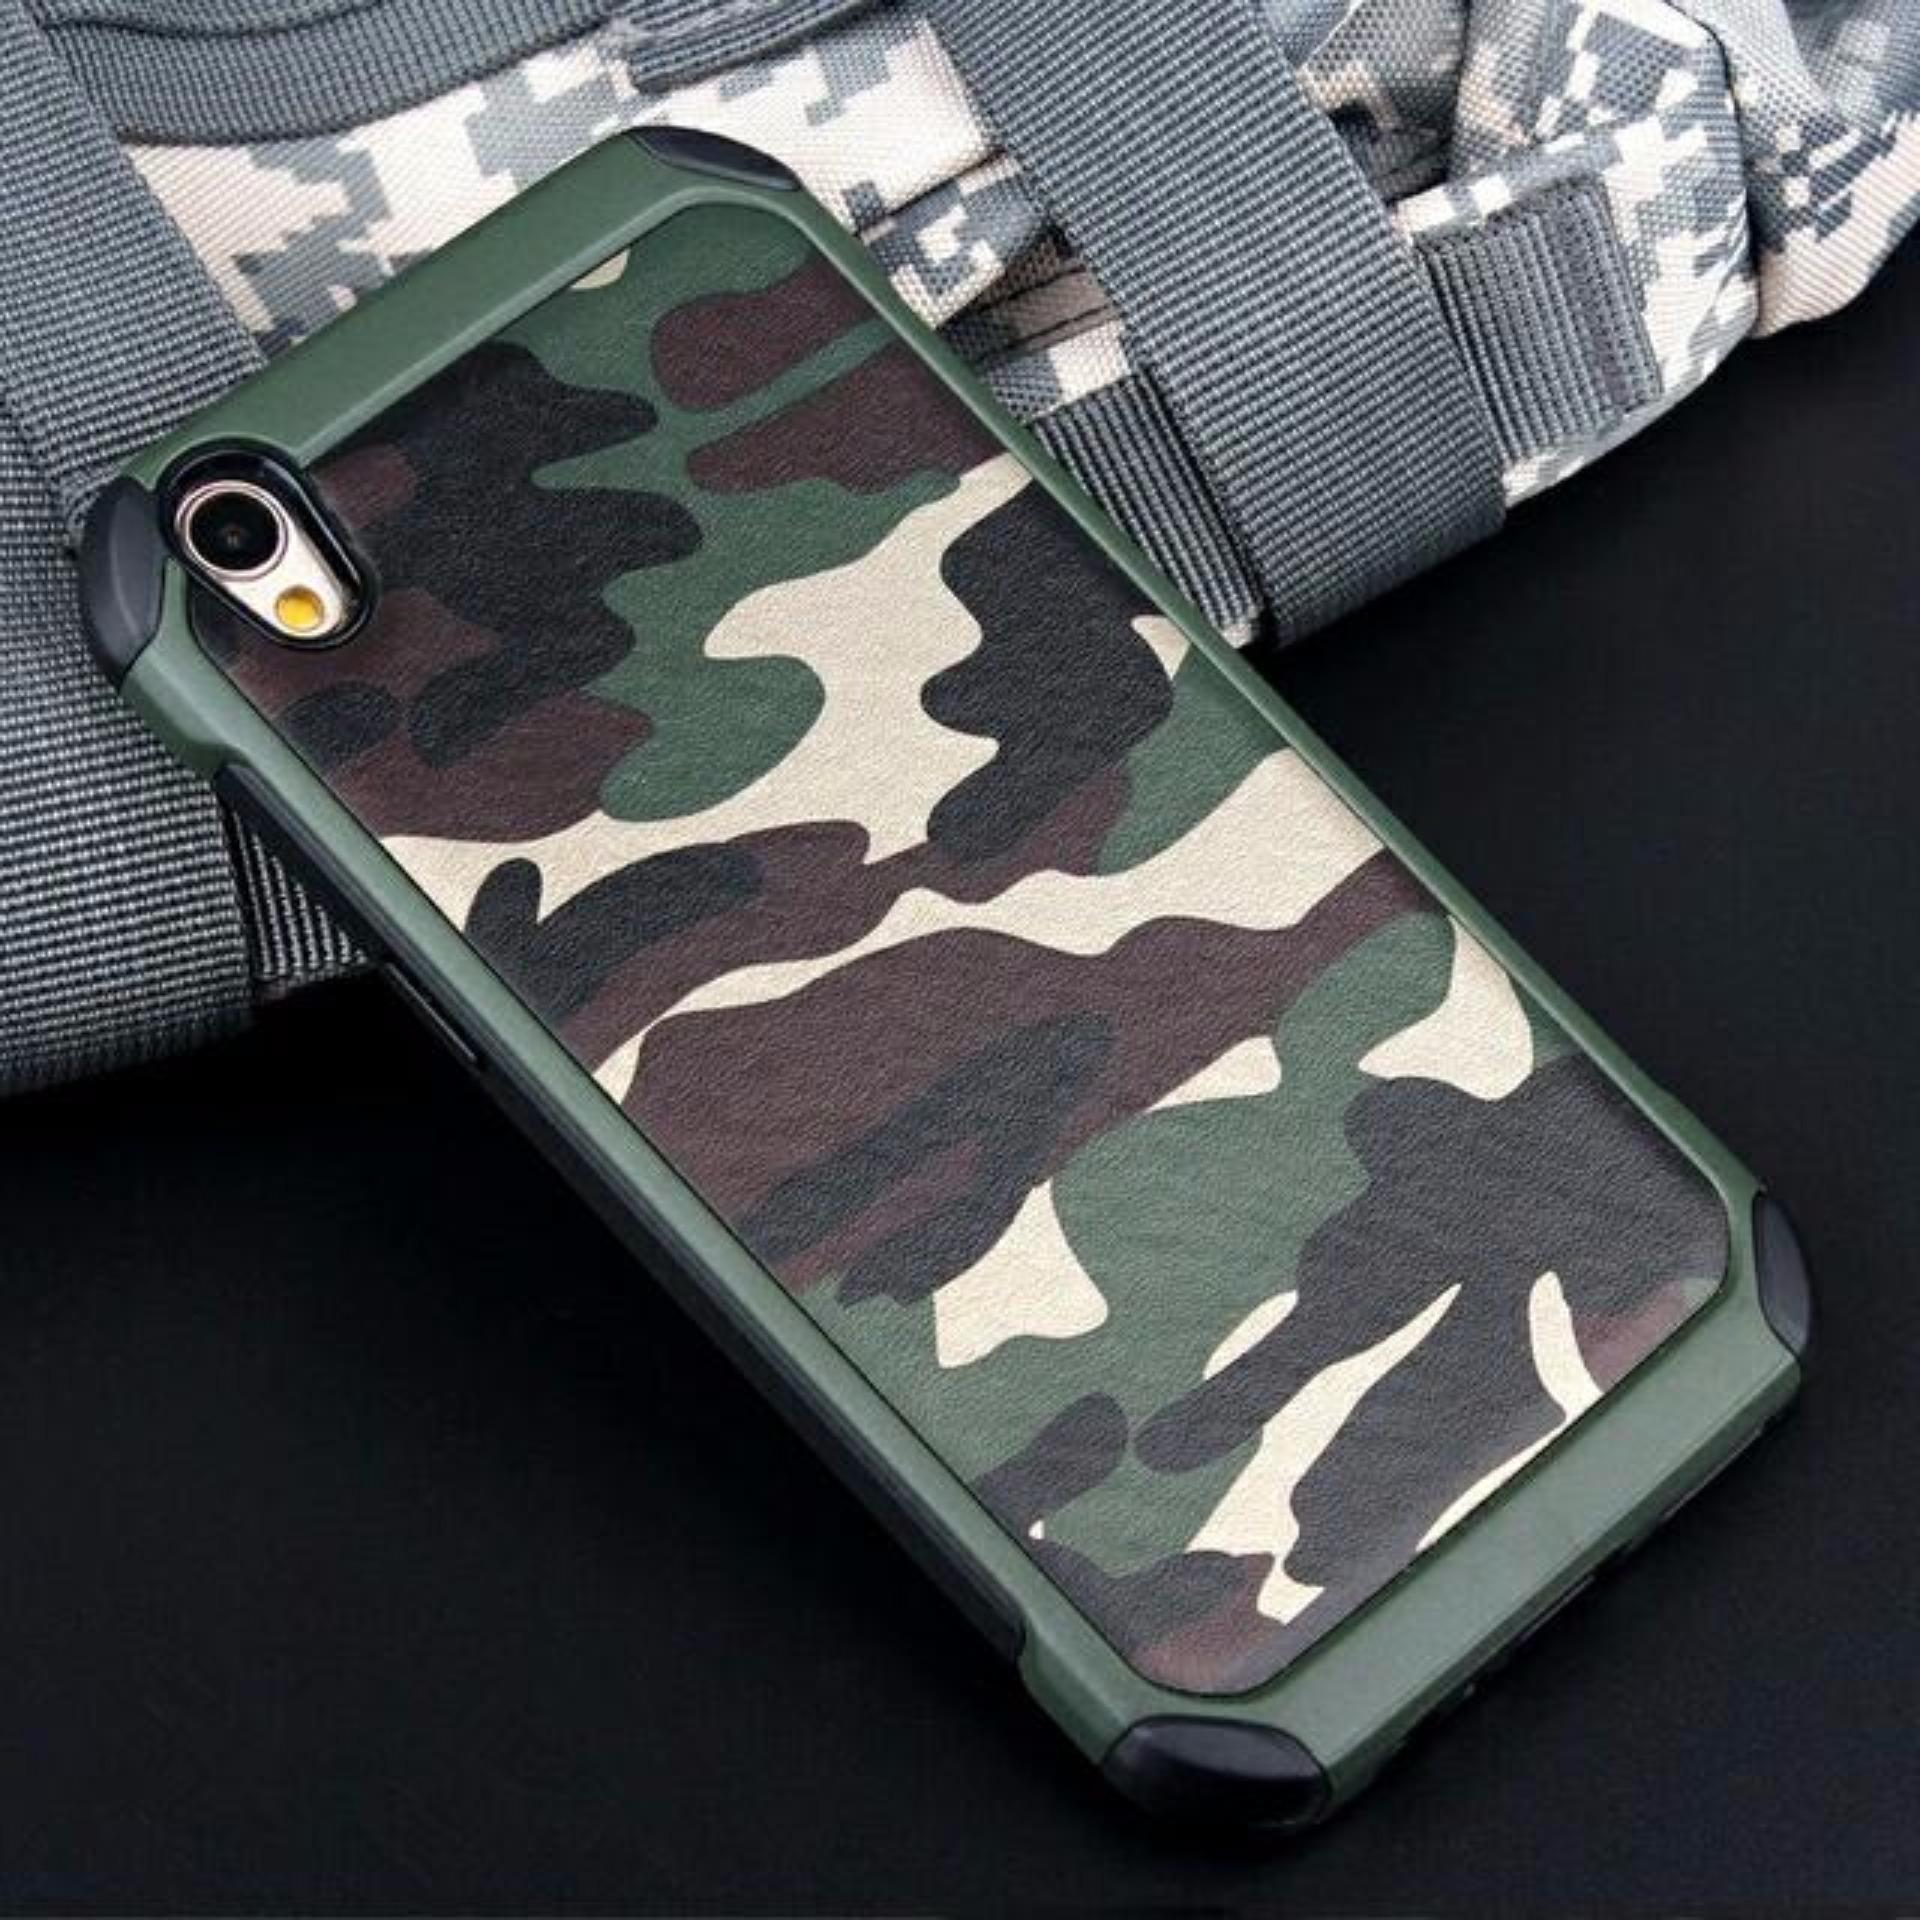 Harga Oppo Neo 9 A37 Case Tough Armor Army Military Hardcase Cover Green Asli